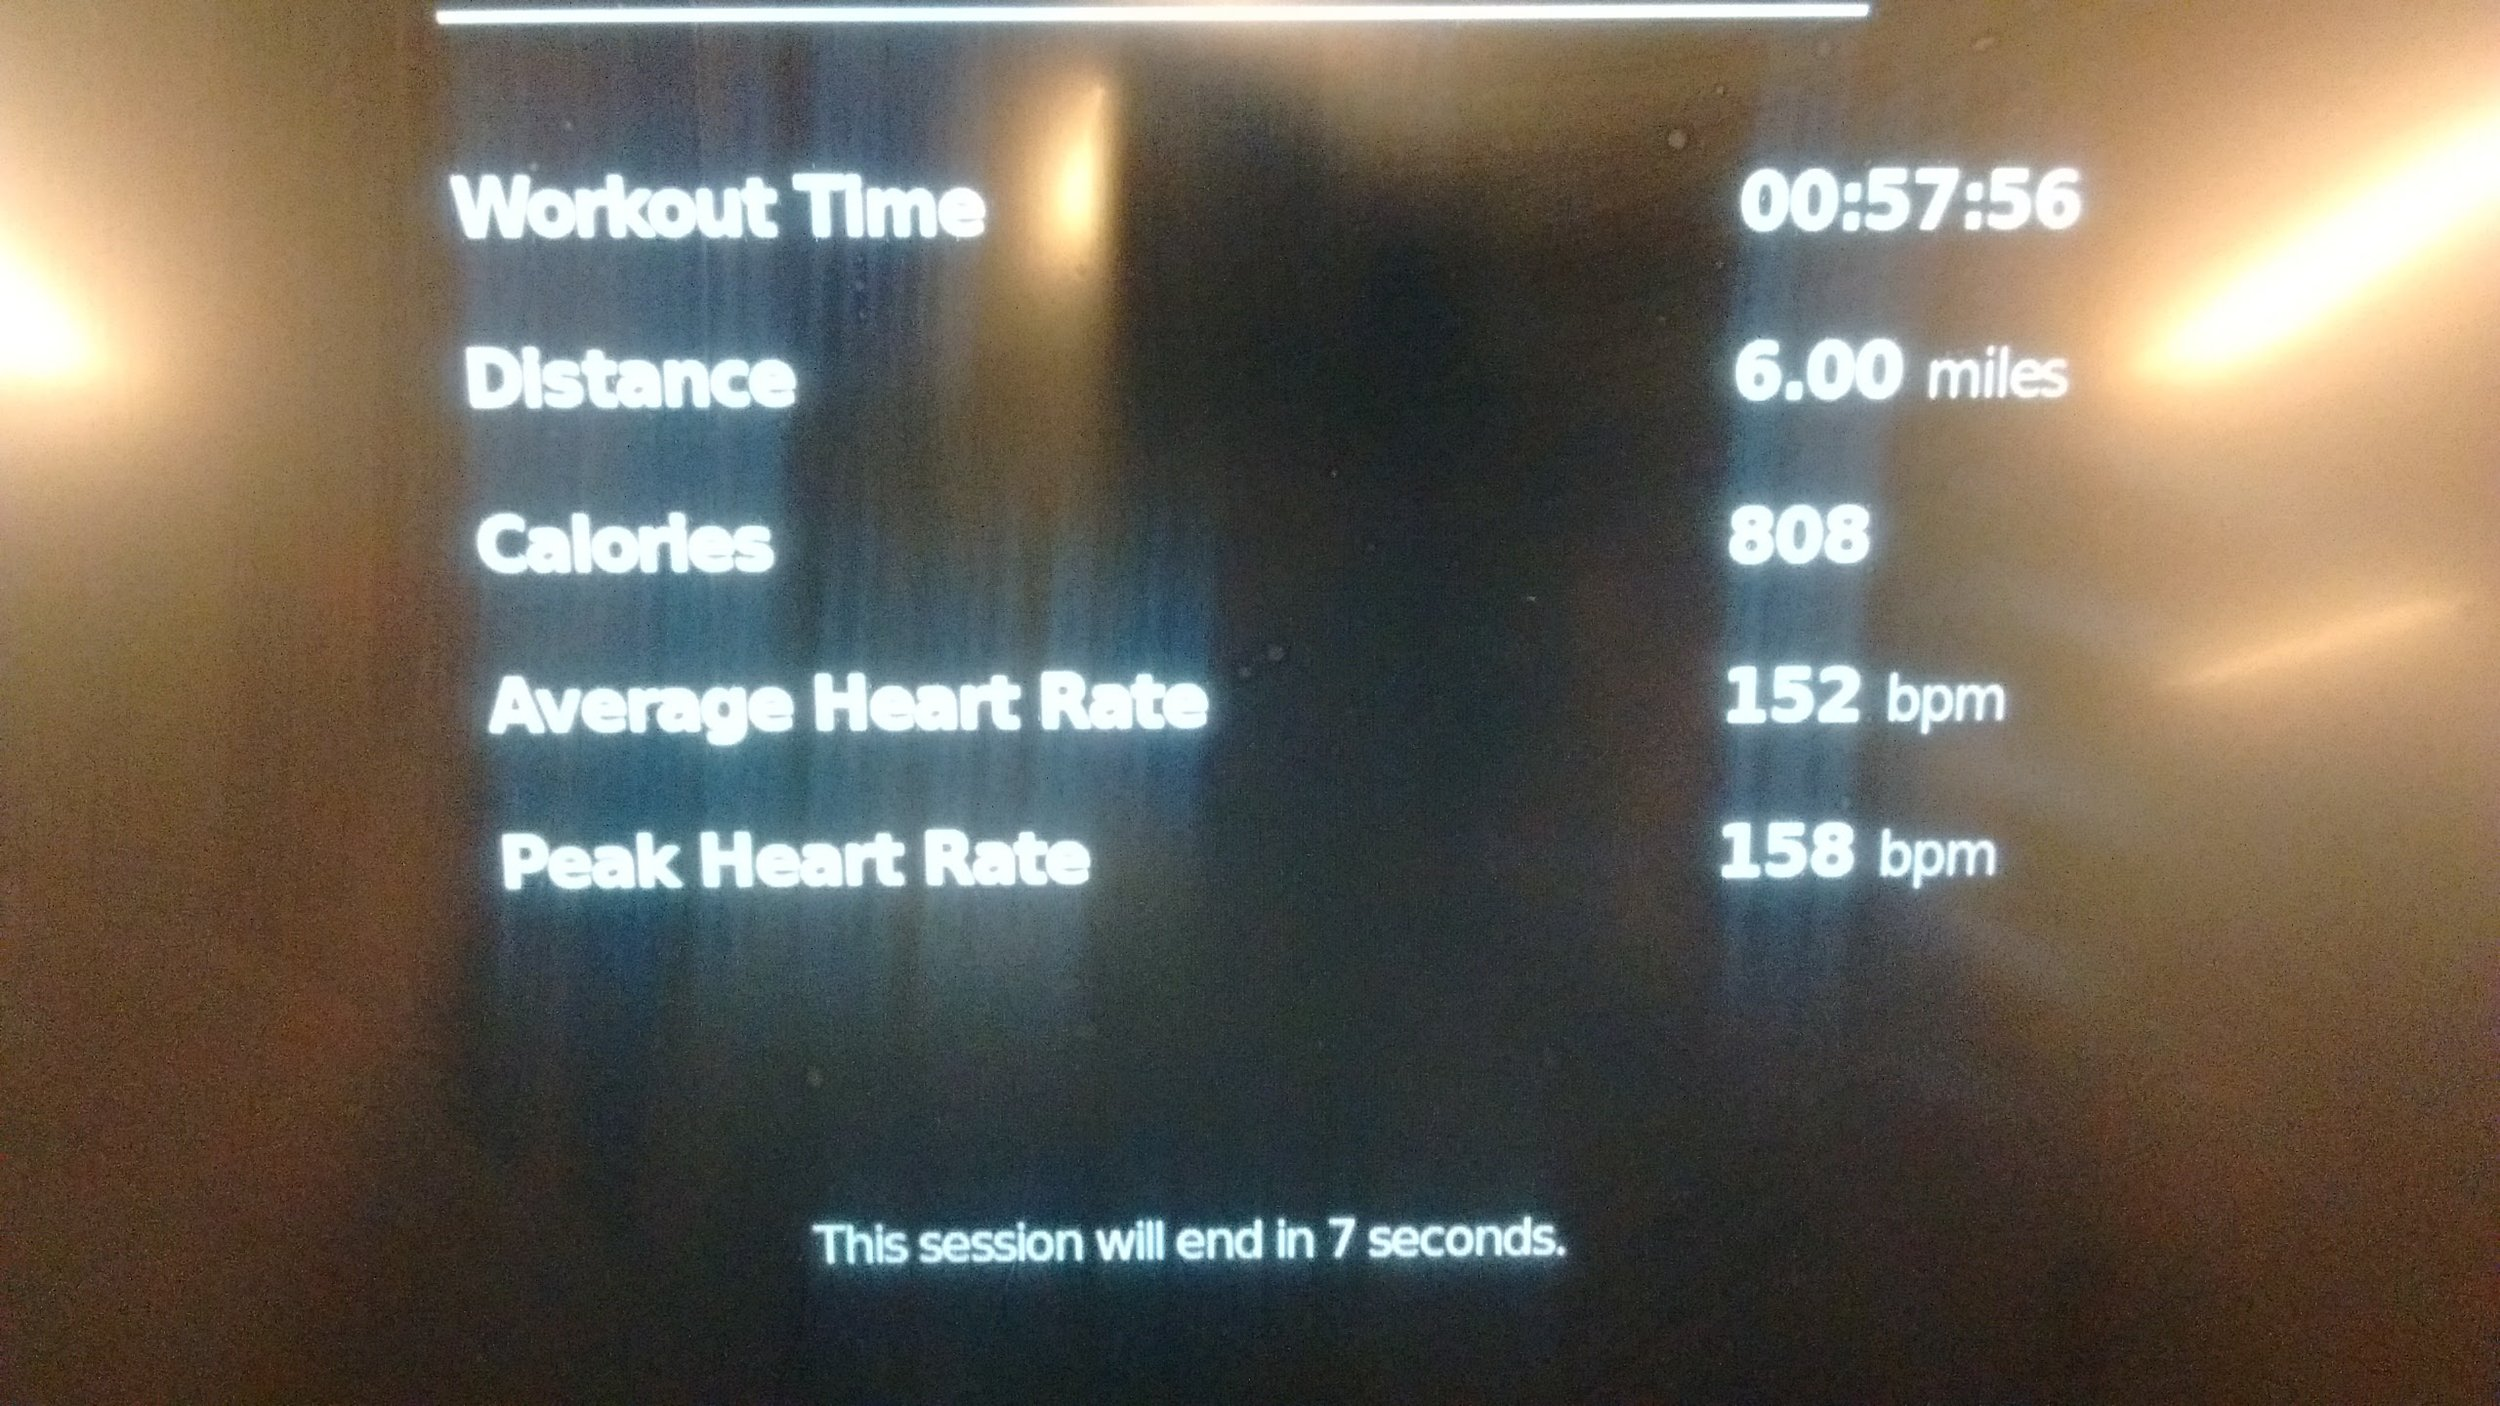 My last cardio workout on the treadmill.Only planned on doing 4 miles but just pushed it instead.